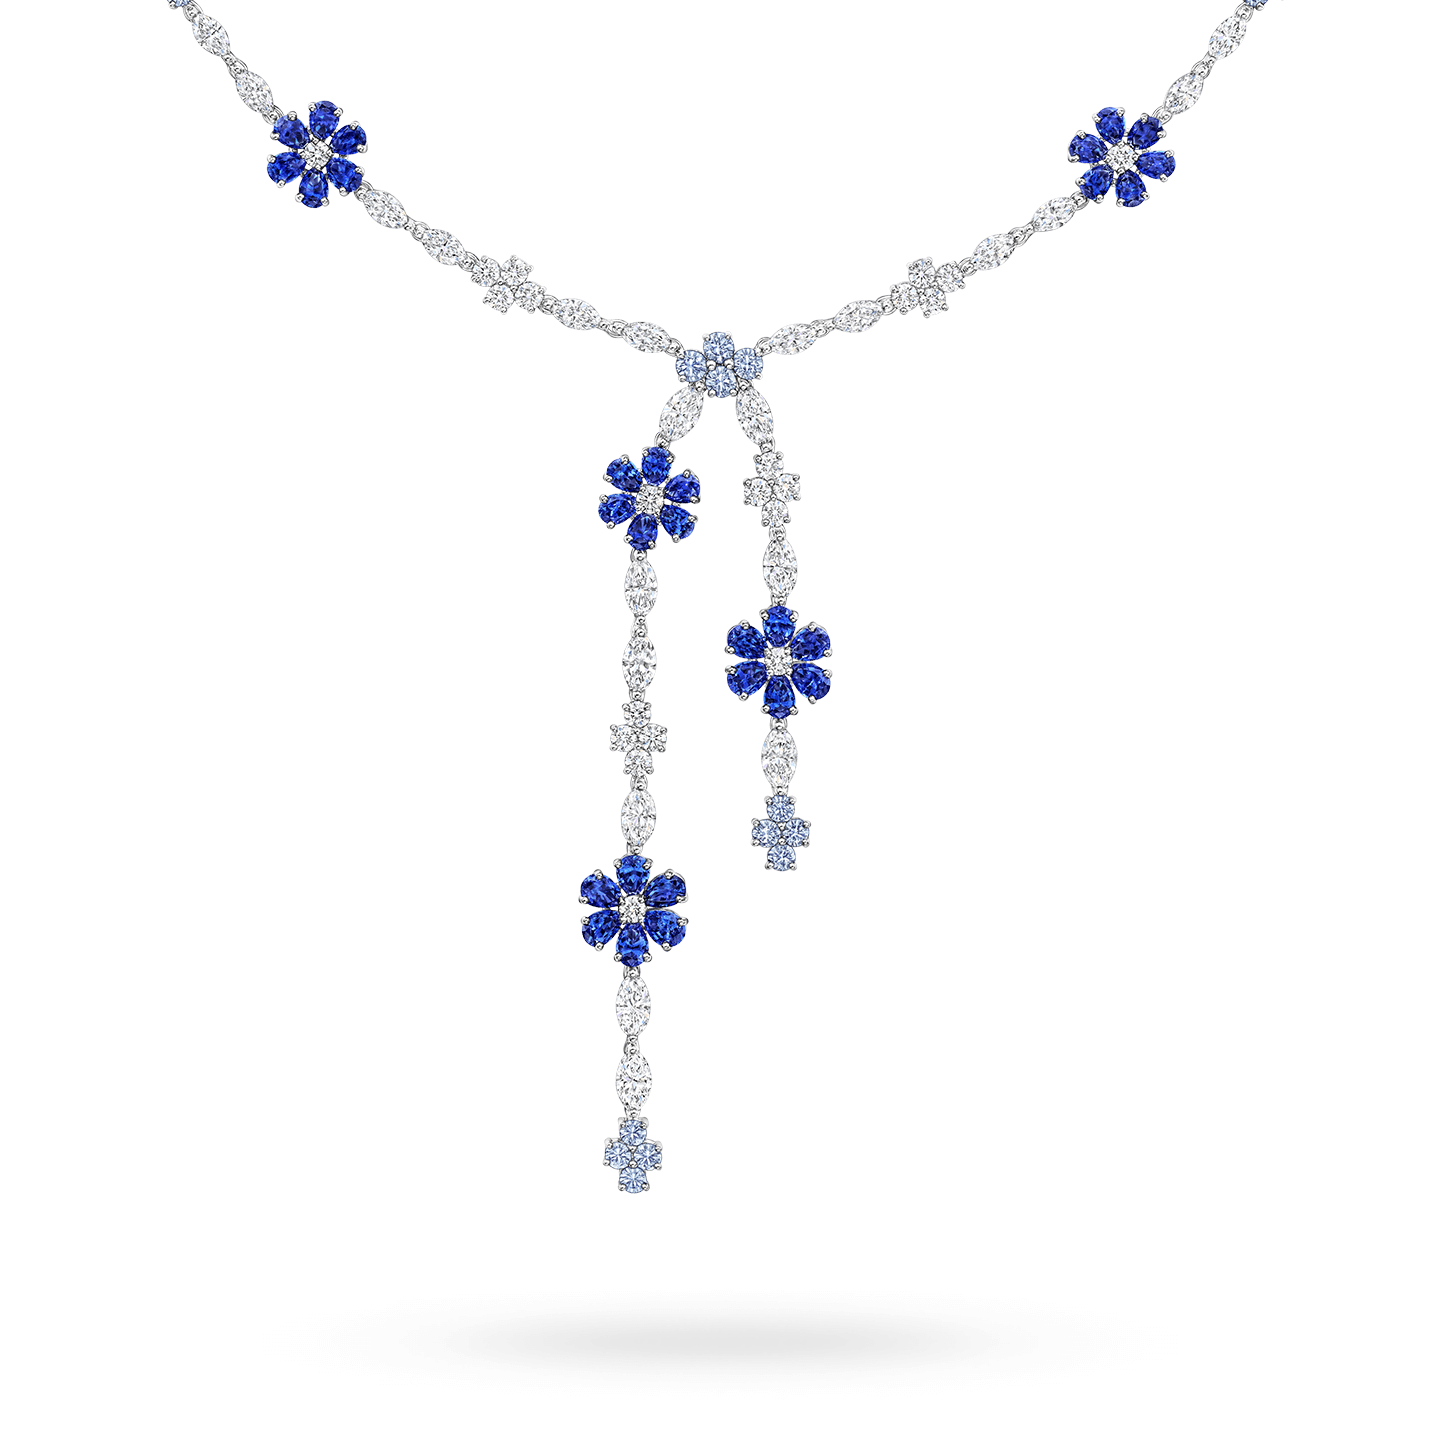 Forget-Me-Not Lariat Sapphire and Diamond Necklace, Product Image 2